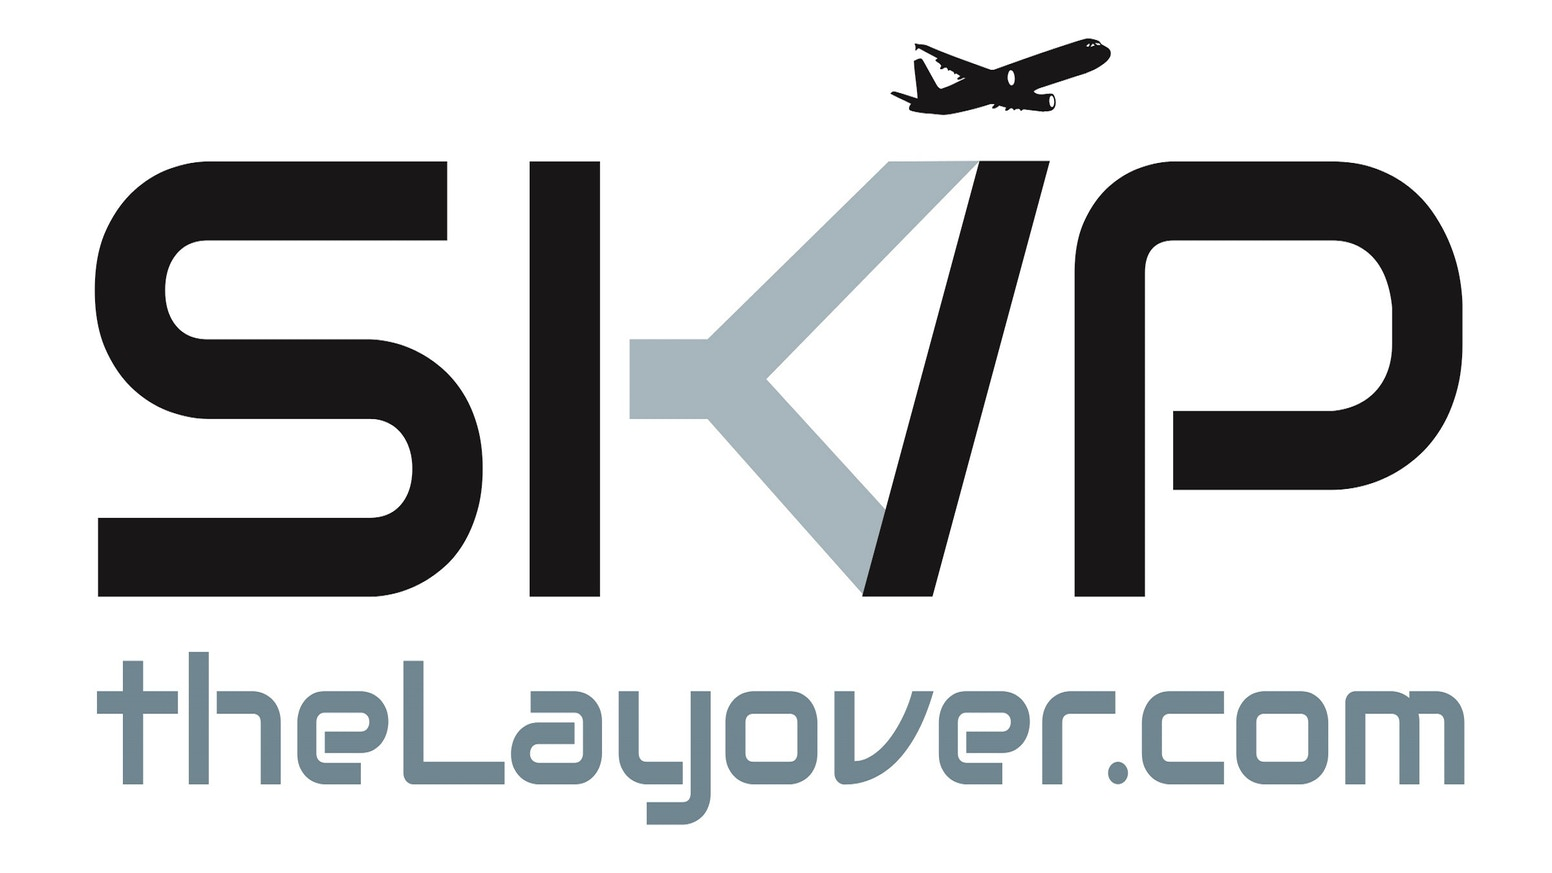 A company that will enable people to eliminate layovers on their purchased airline tickets.